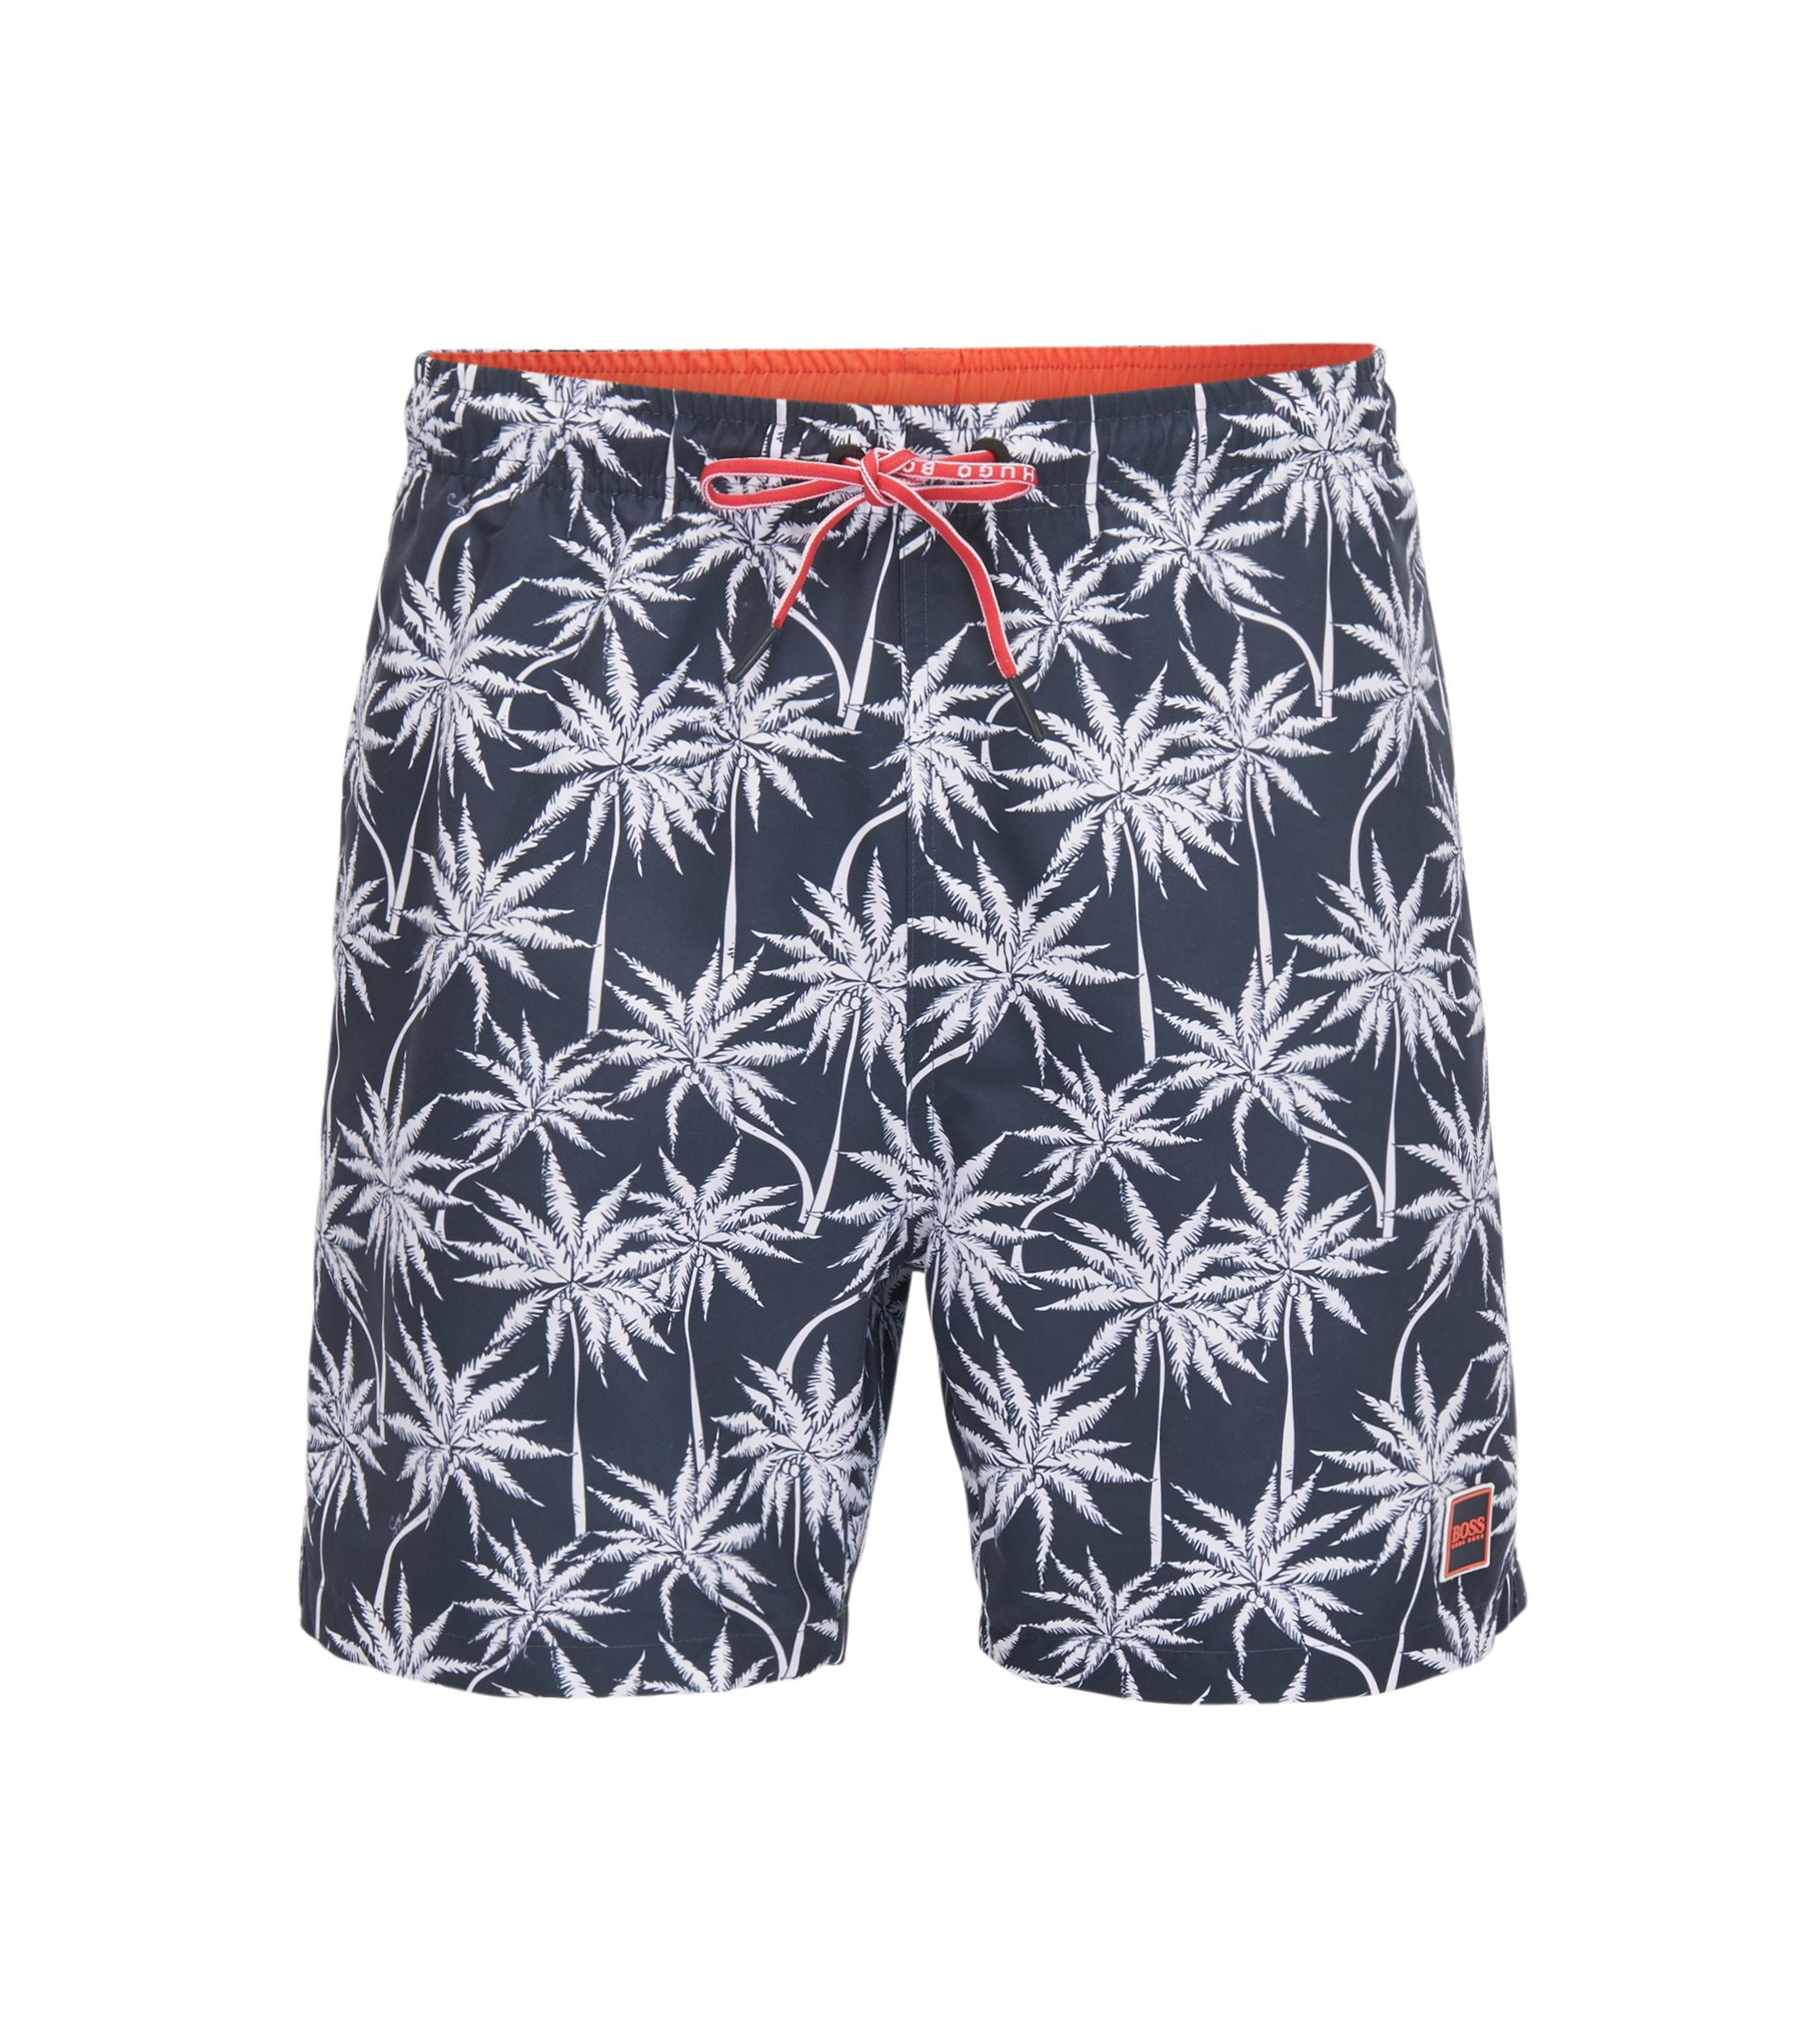 Drawstring swim shorts with palm print, Open Grey